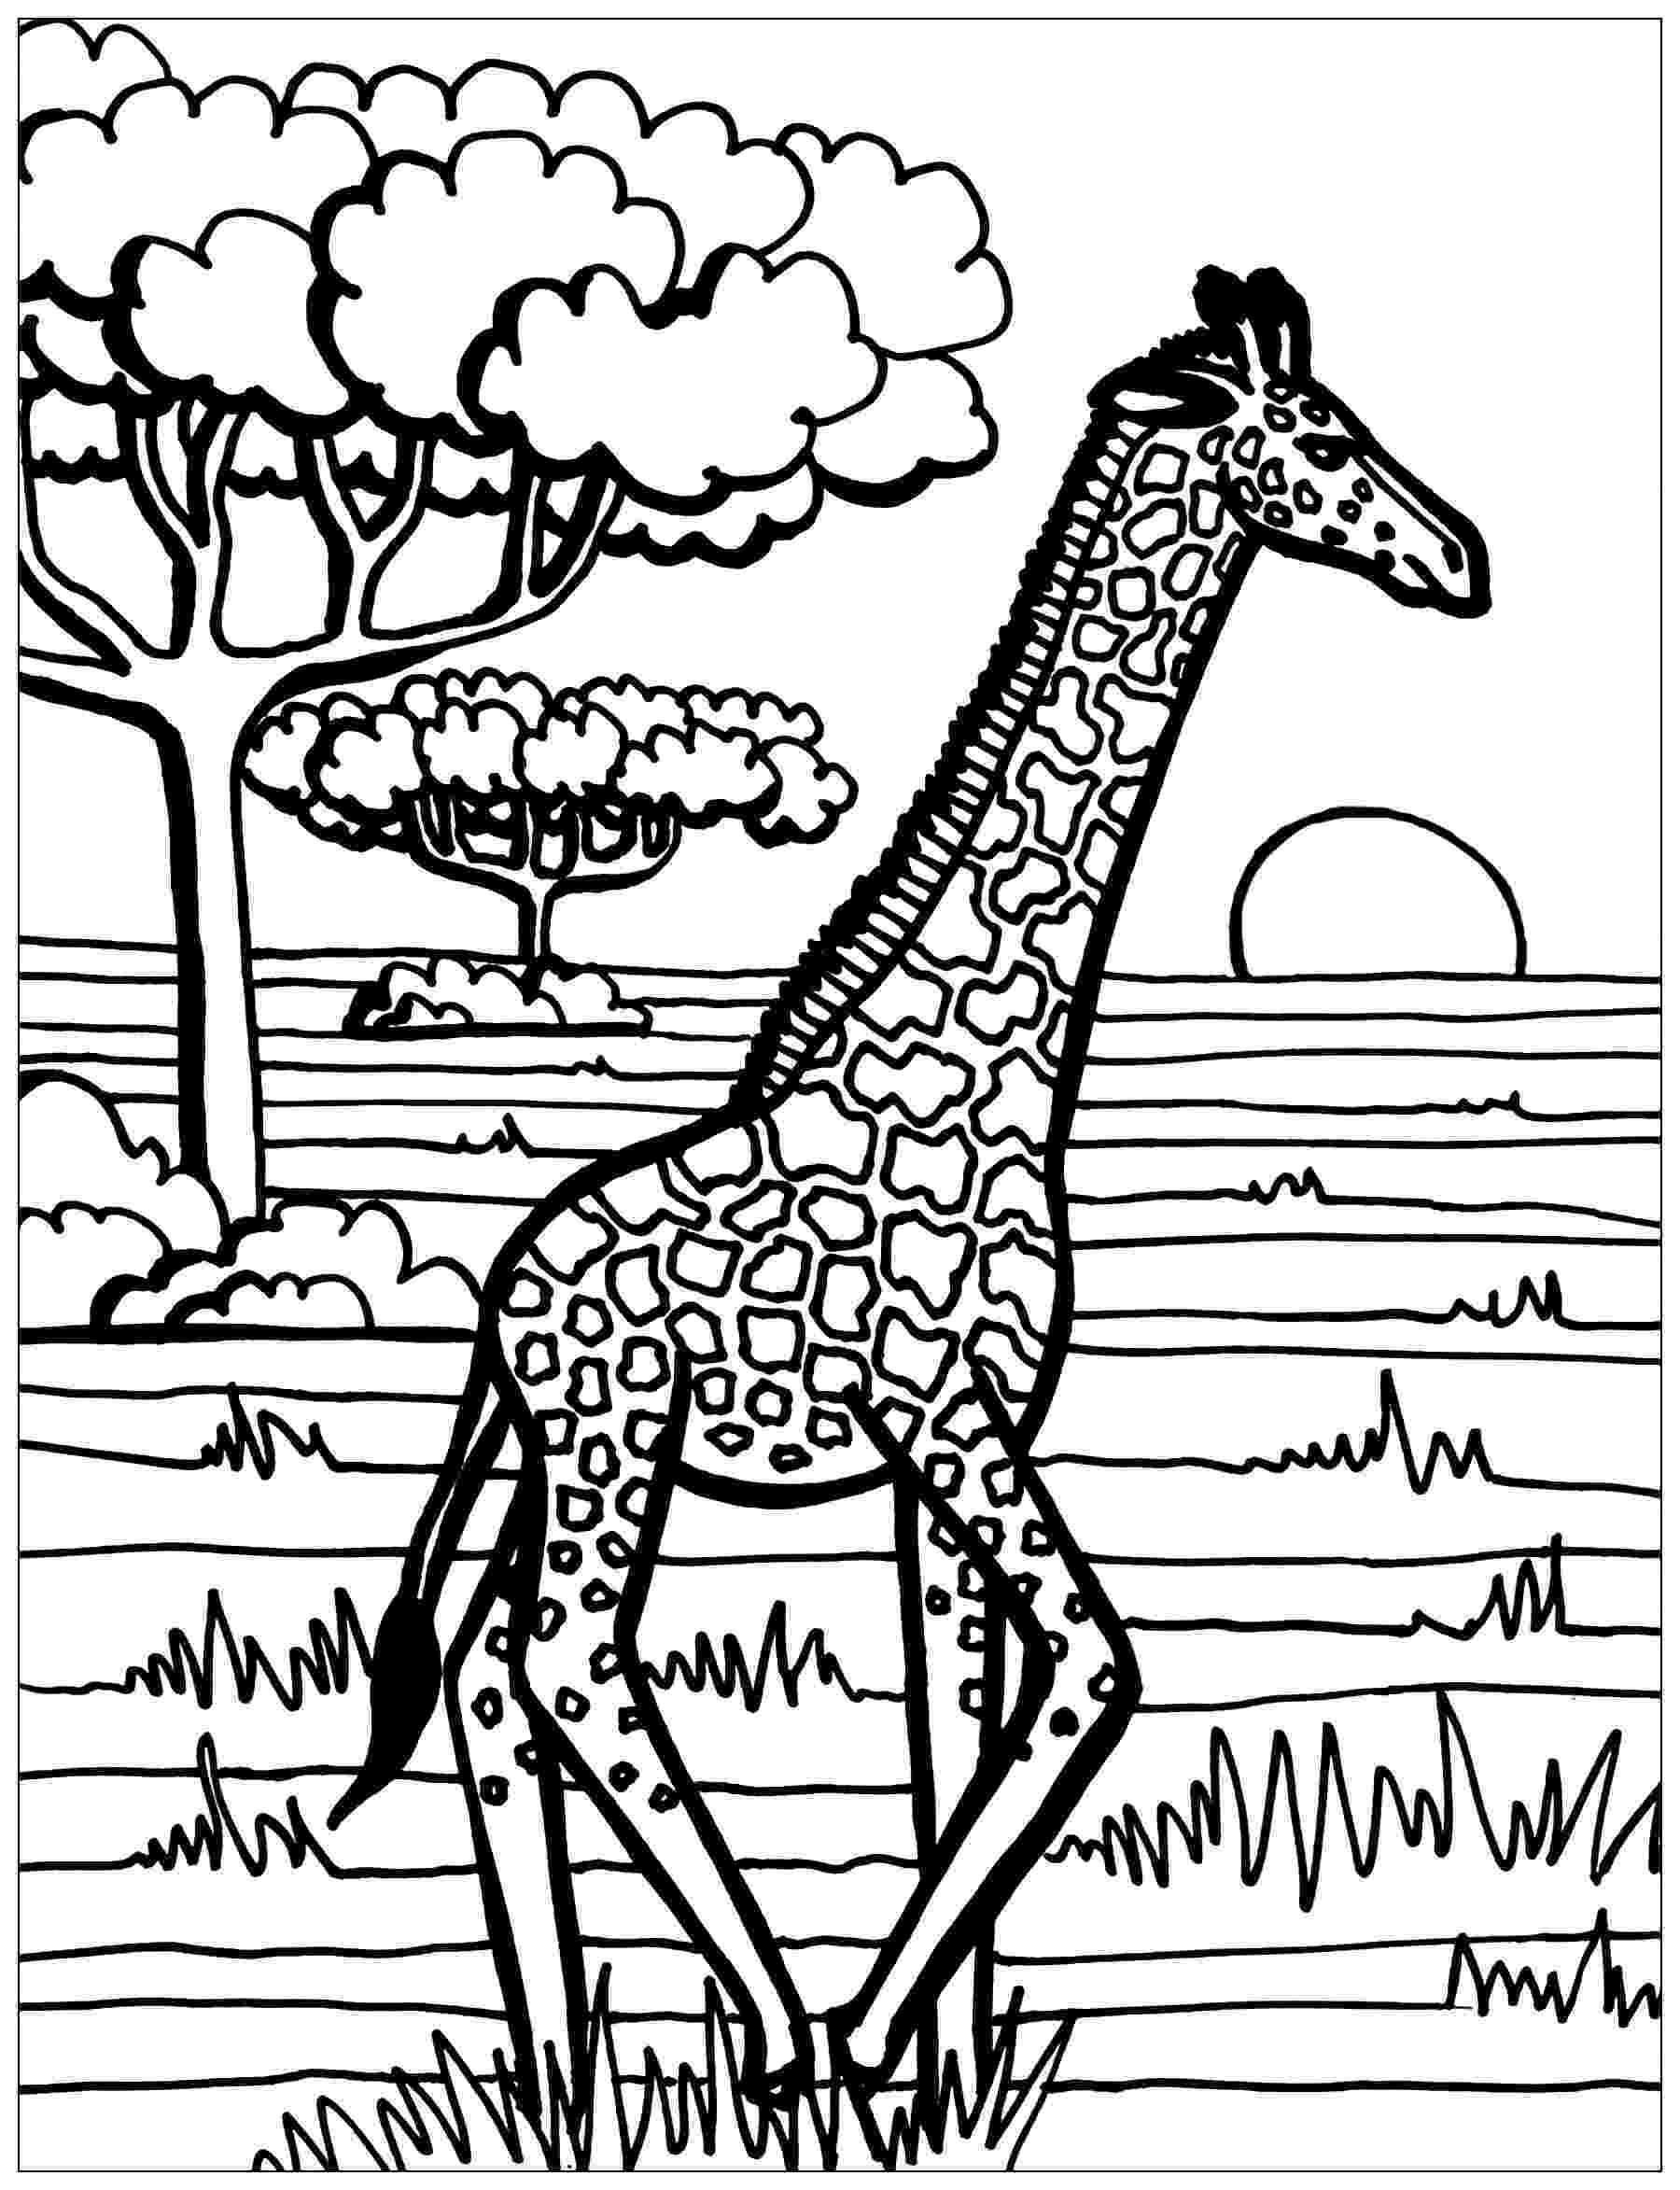 colouring pages for giraffe giraffe coloring page giraffes adult coloring pages pages giraffe for colouring